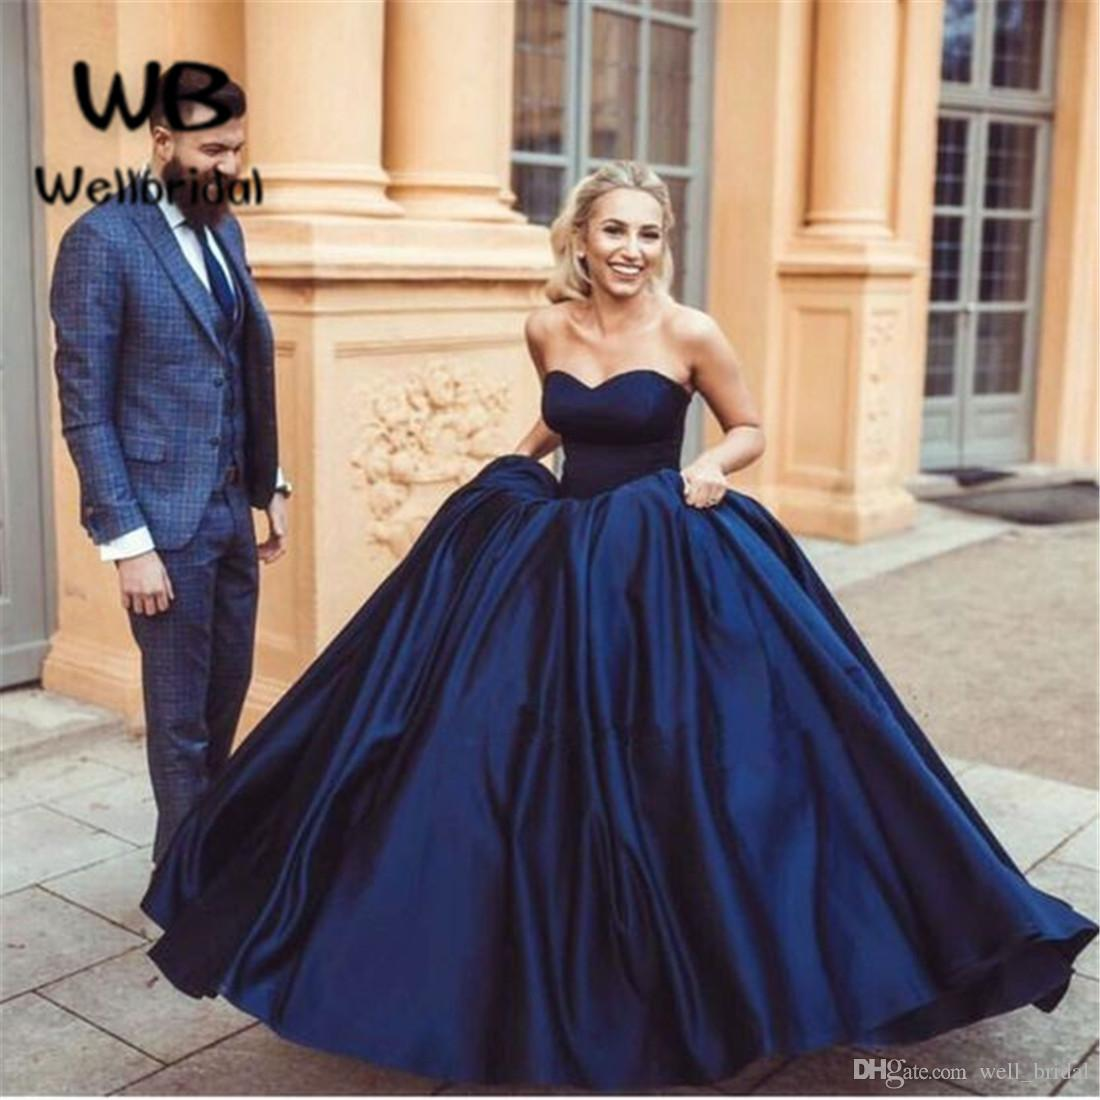 Elegant 2018 Ball Gown Prom Dress Long Sweetheart Satin Lace Up Back ...